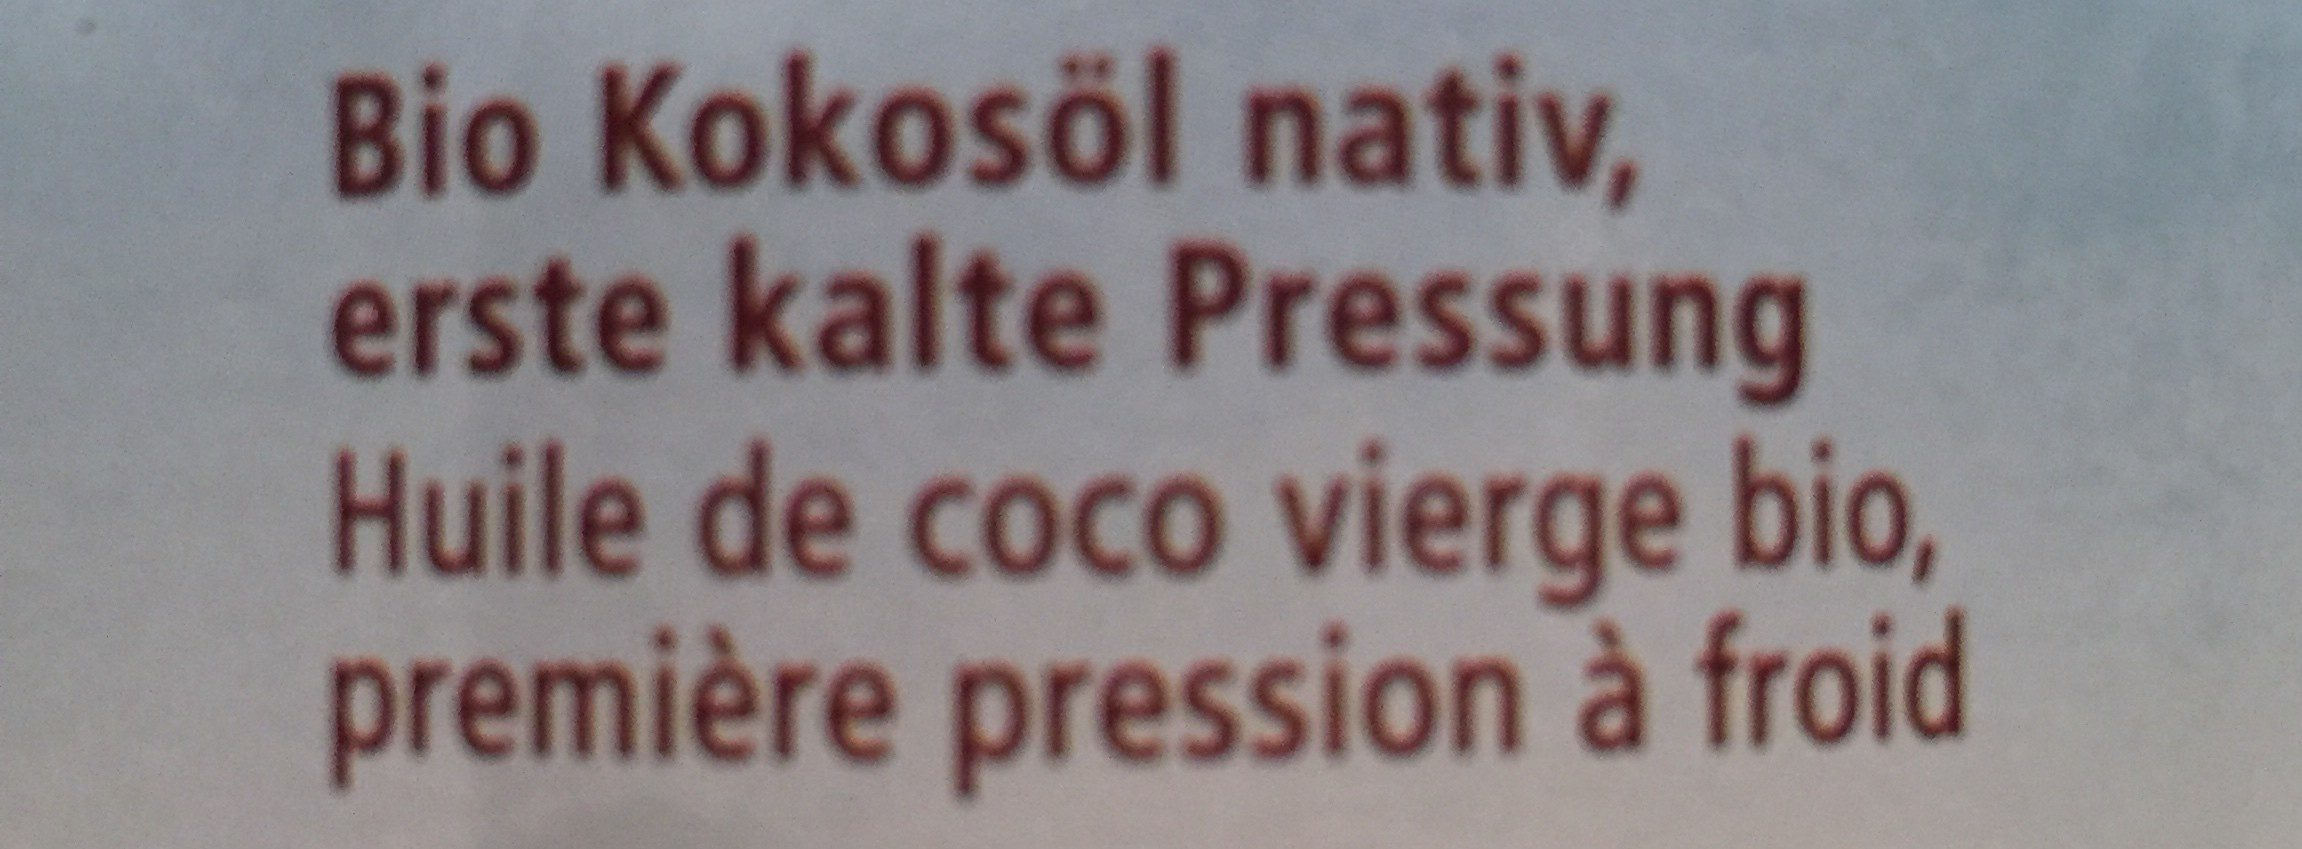 Kokosöl nativ - Ingredients